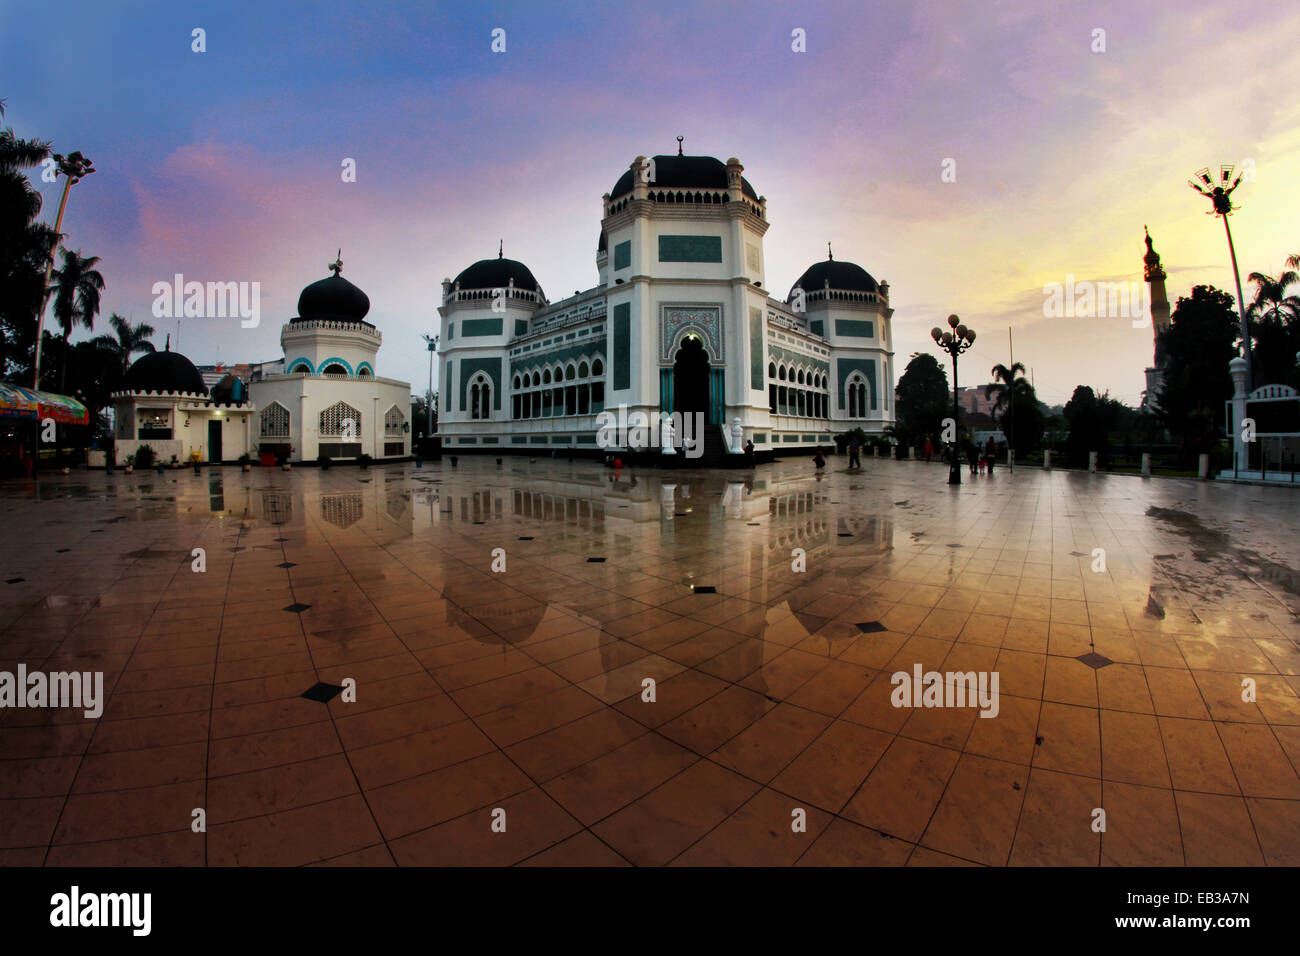 View of mosque in town square - Stock Image